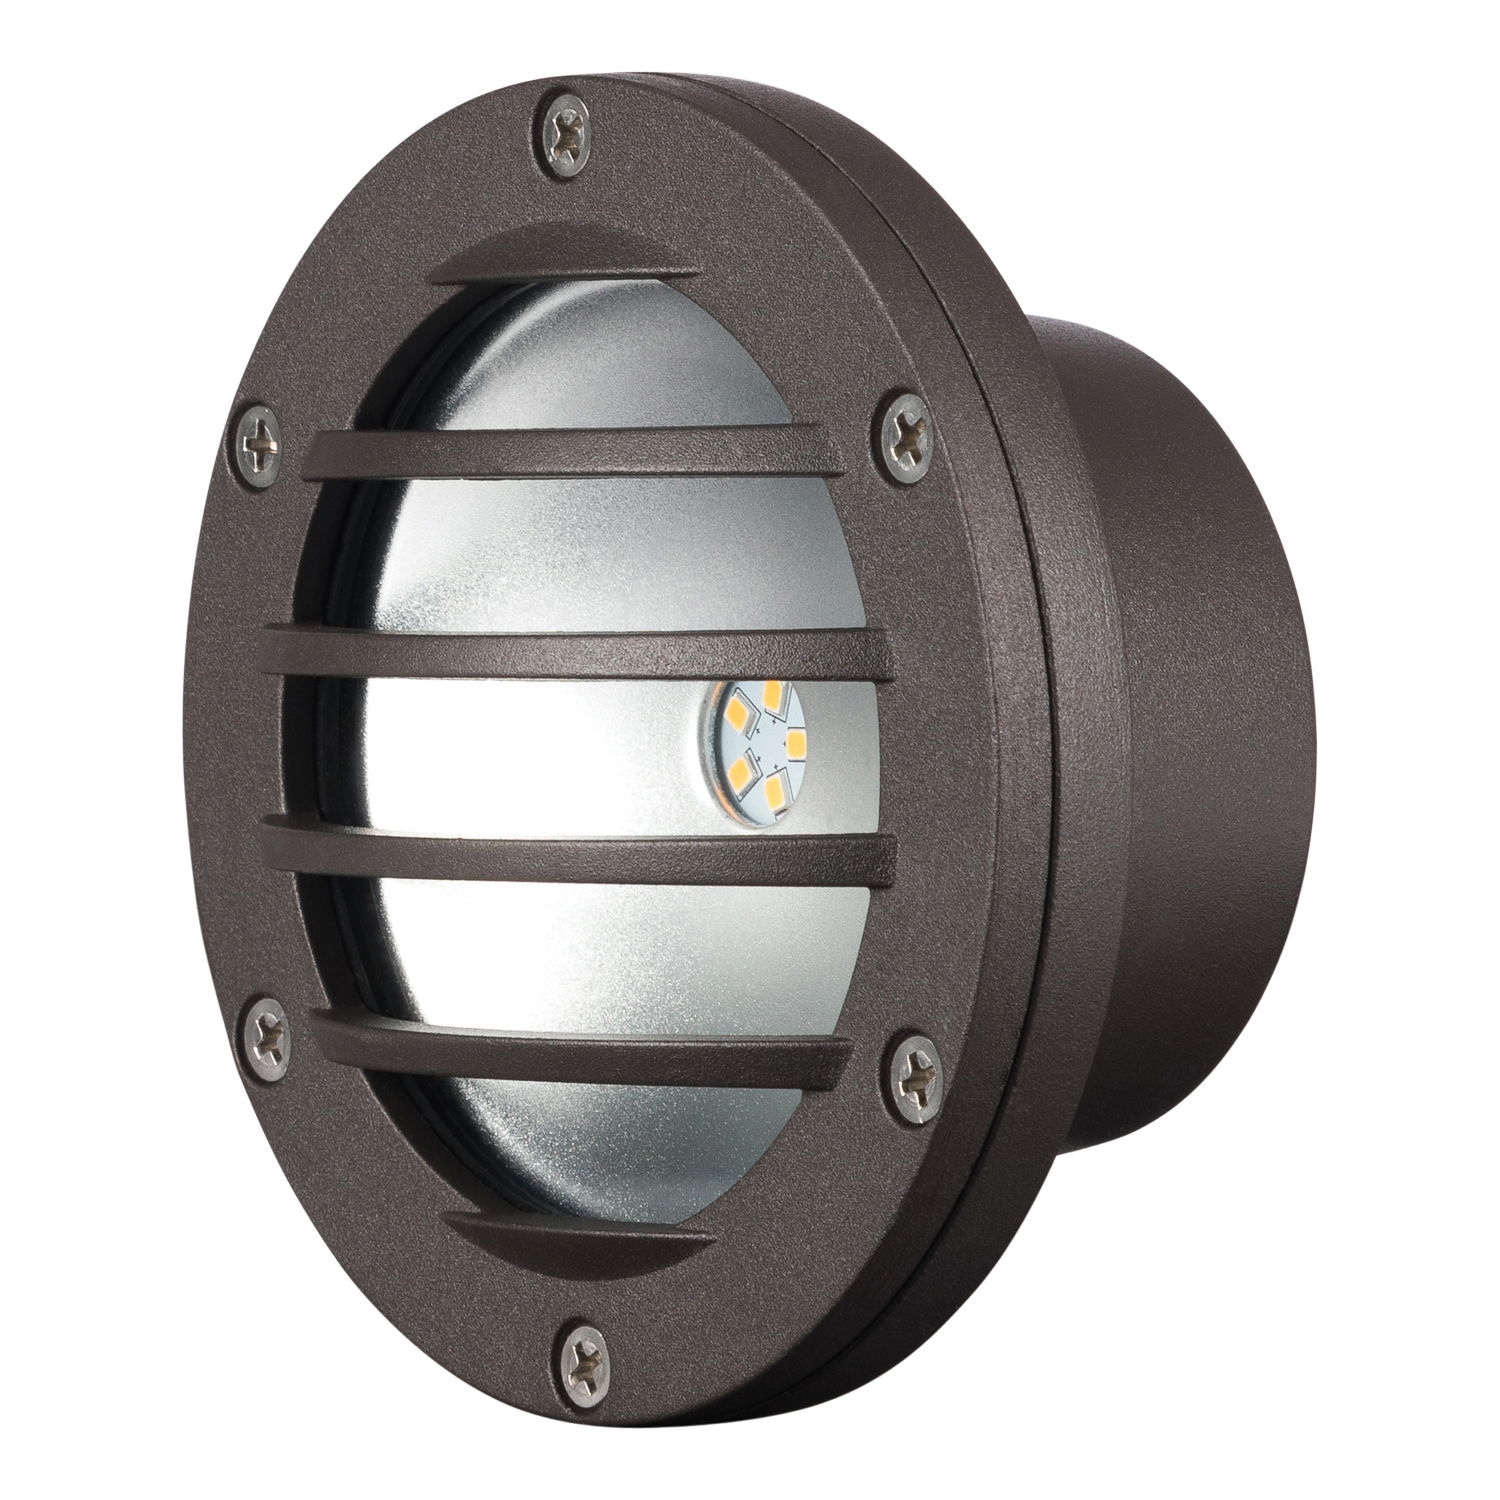 200 Lumen Better Homes Gardens 1 Piece Quickfit 200 Lumen Wall Light